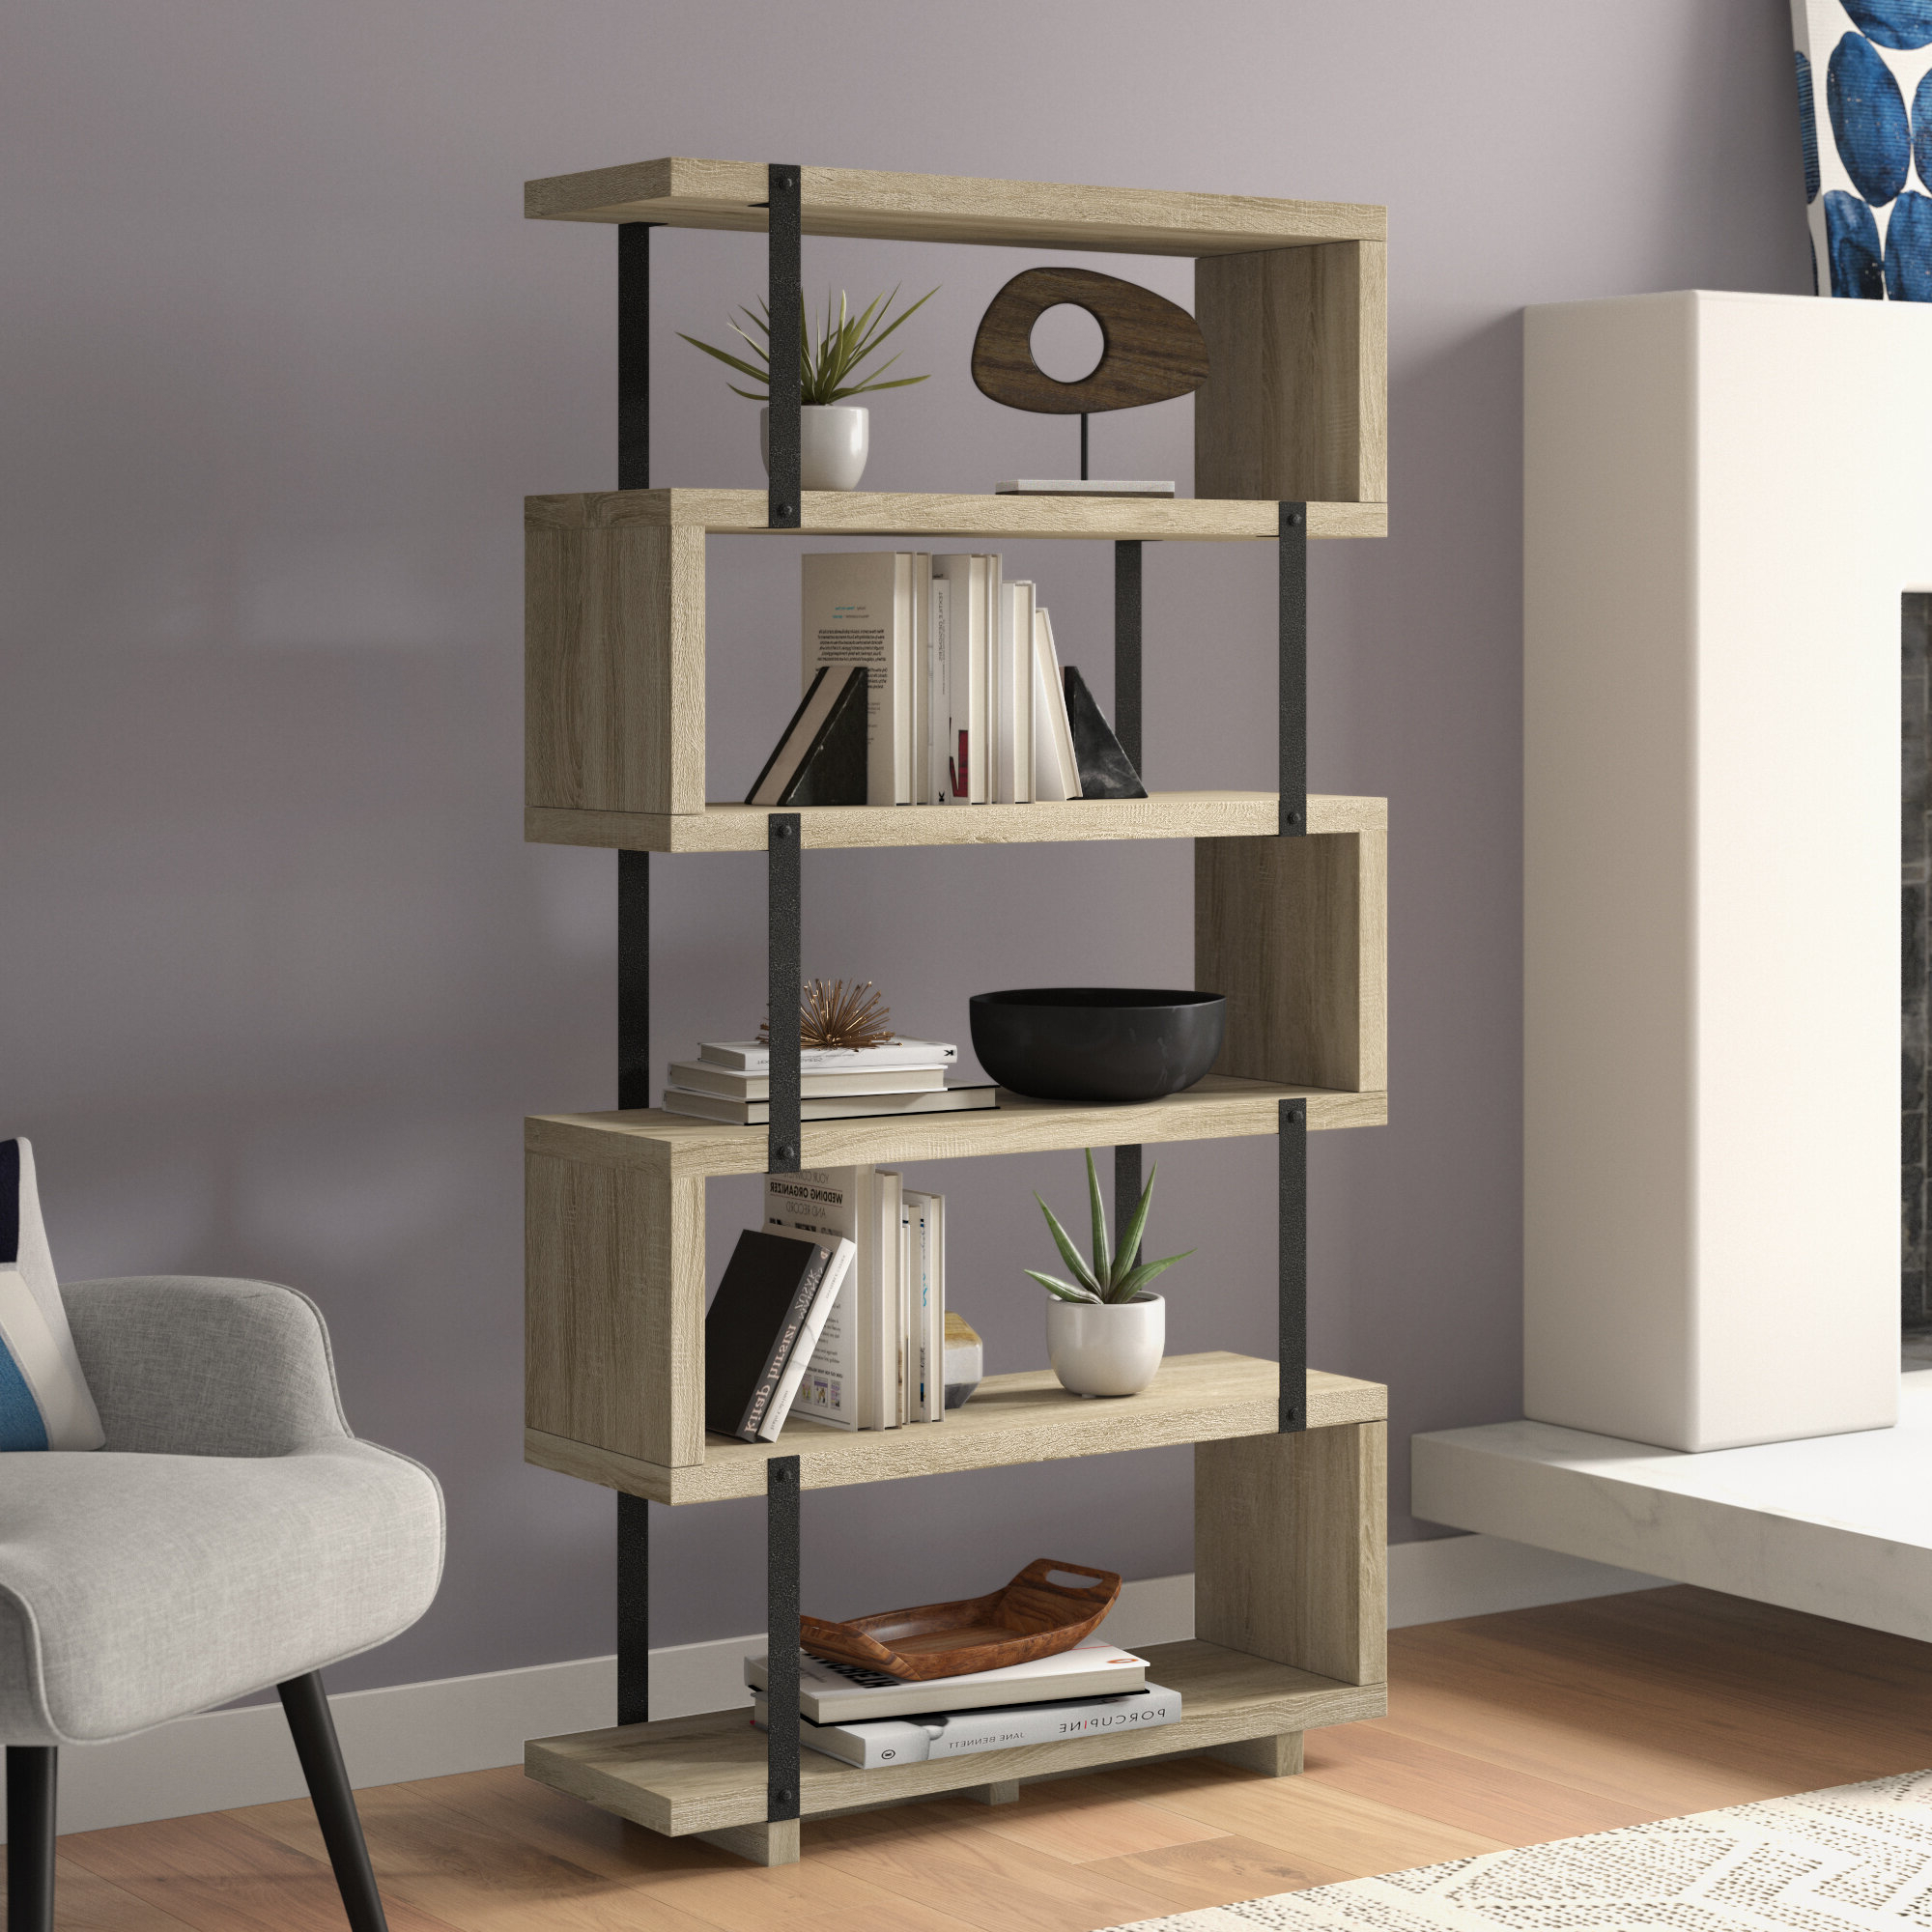 Cullison Standard Bookcases Within Well Liked Brayden Studio Nordin Standard Bookcase & Reviews (View 8 of 20)